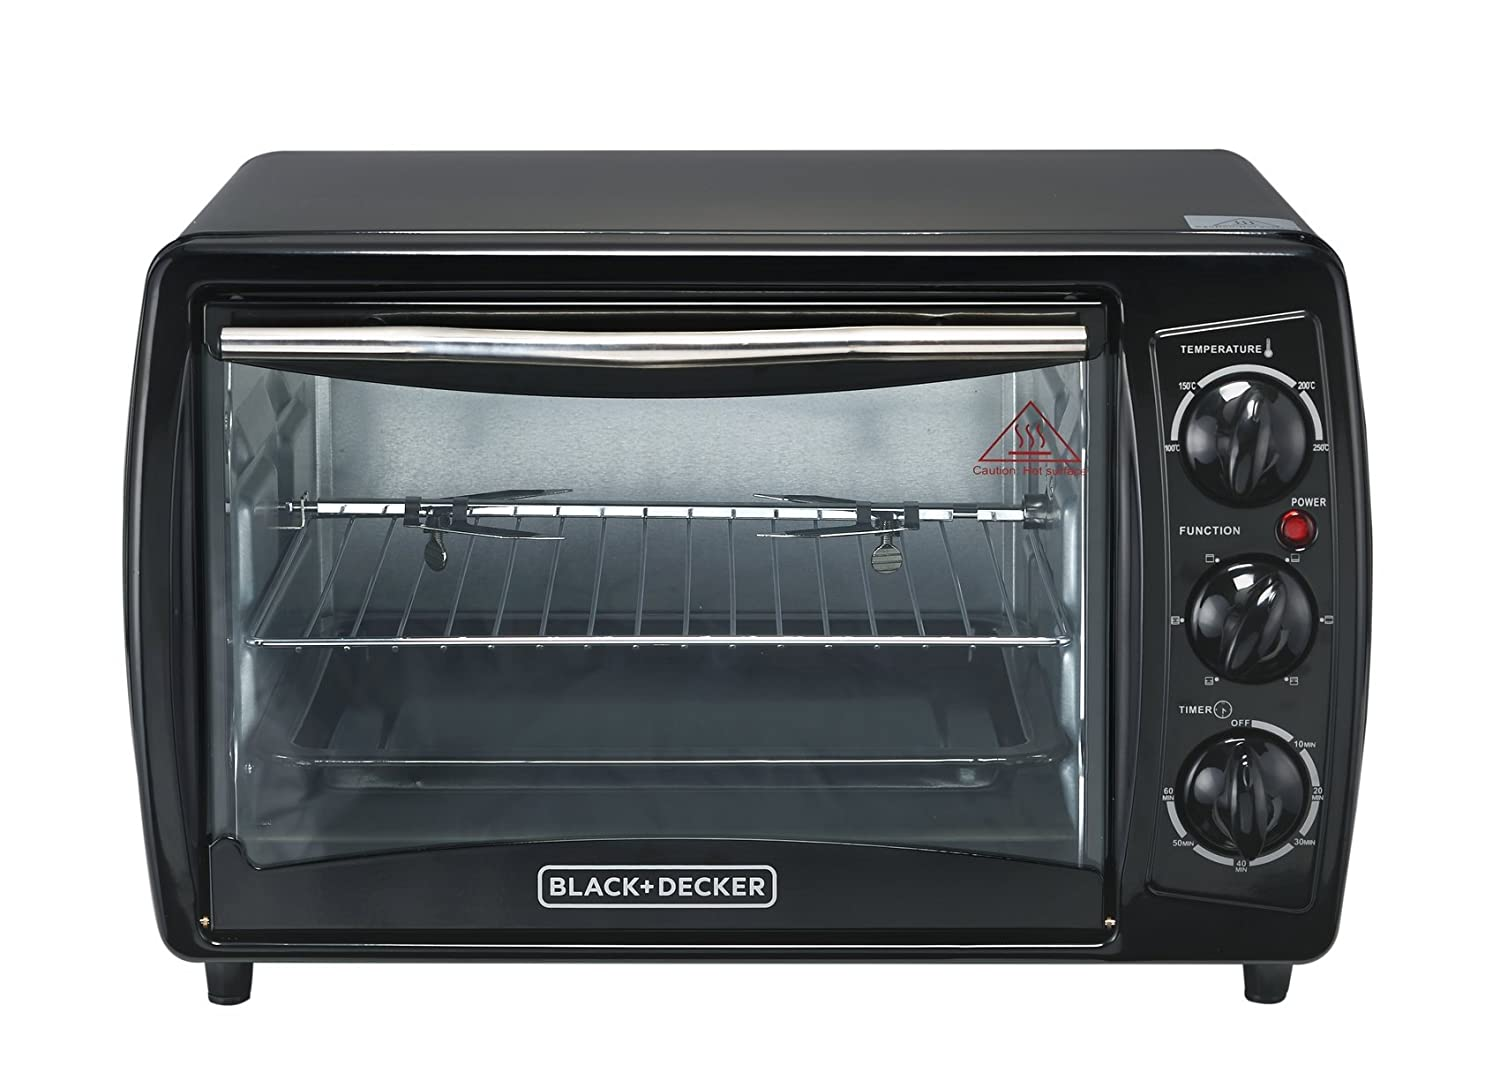 Black Decker TRO2000R 19 L Toaster Oven with Rotisserie Non-USA Compliant , Black